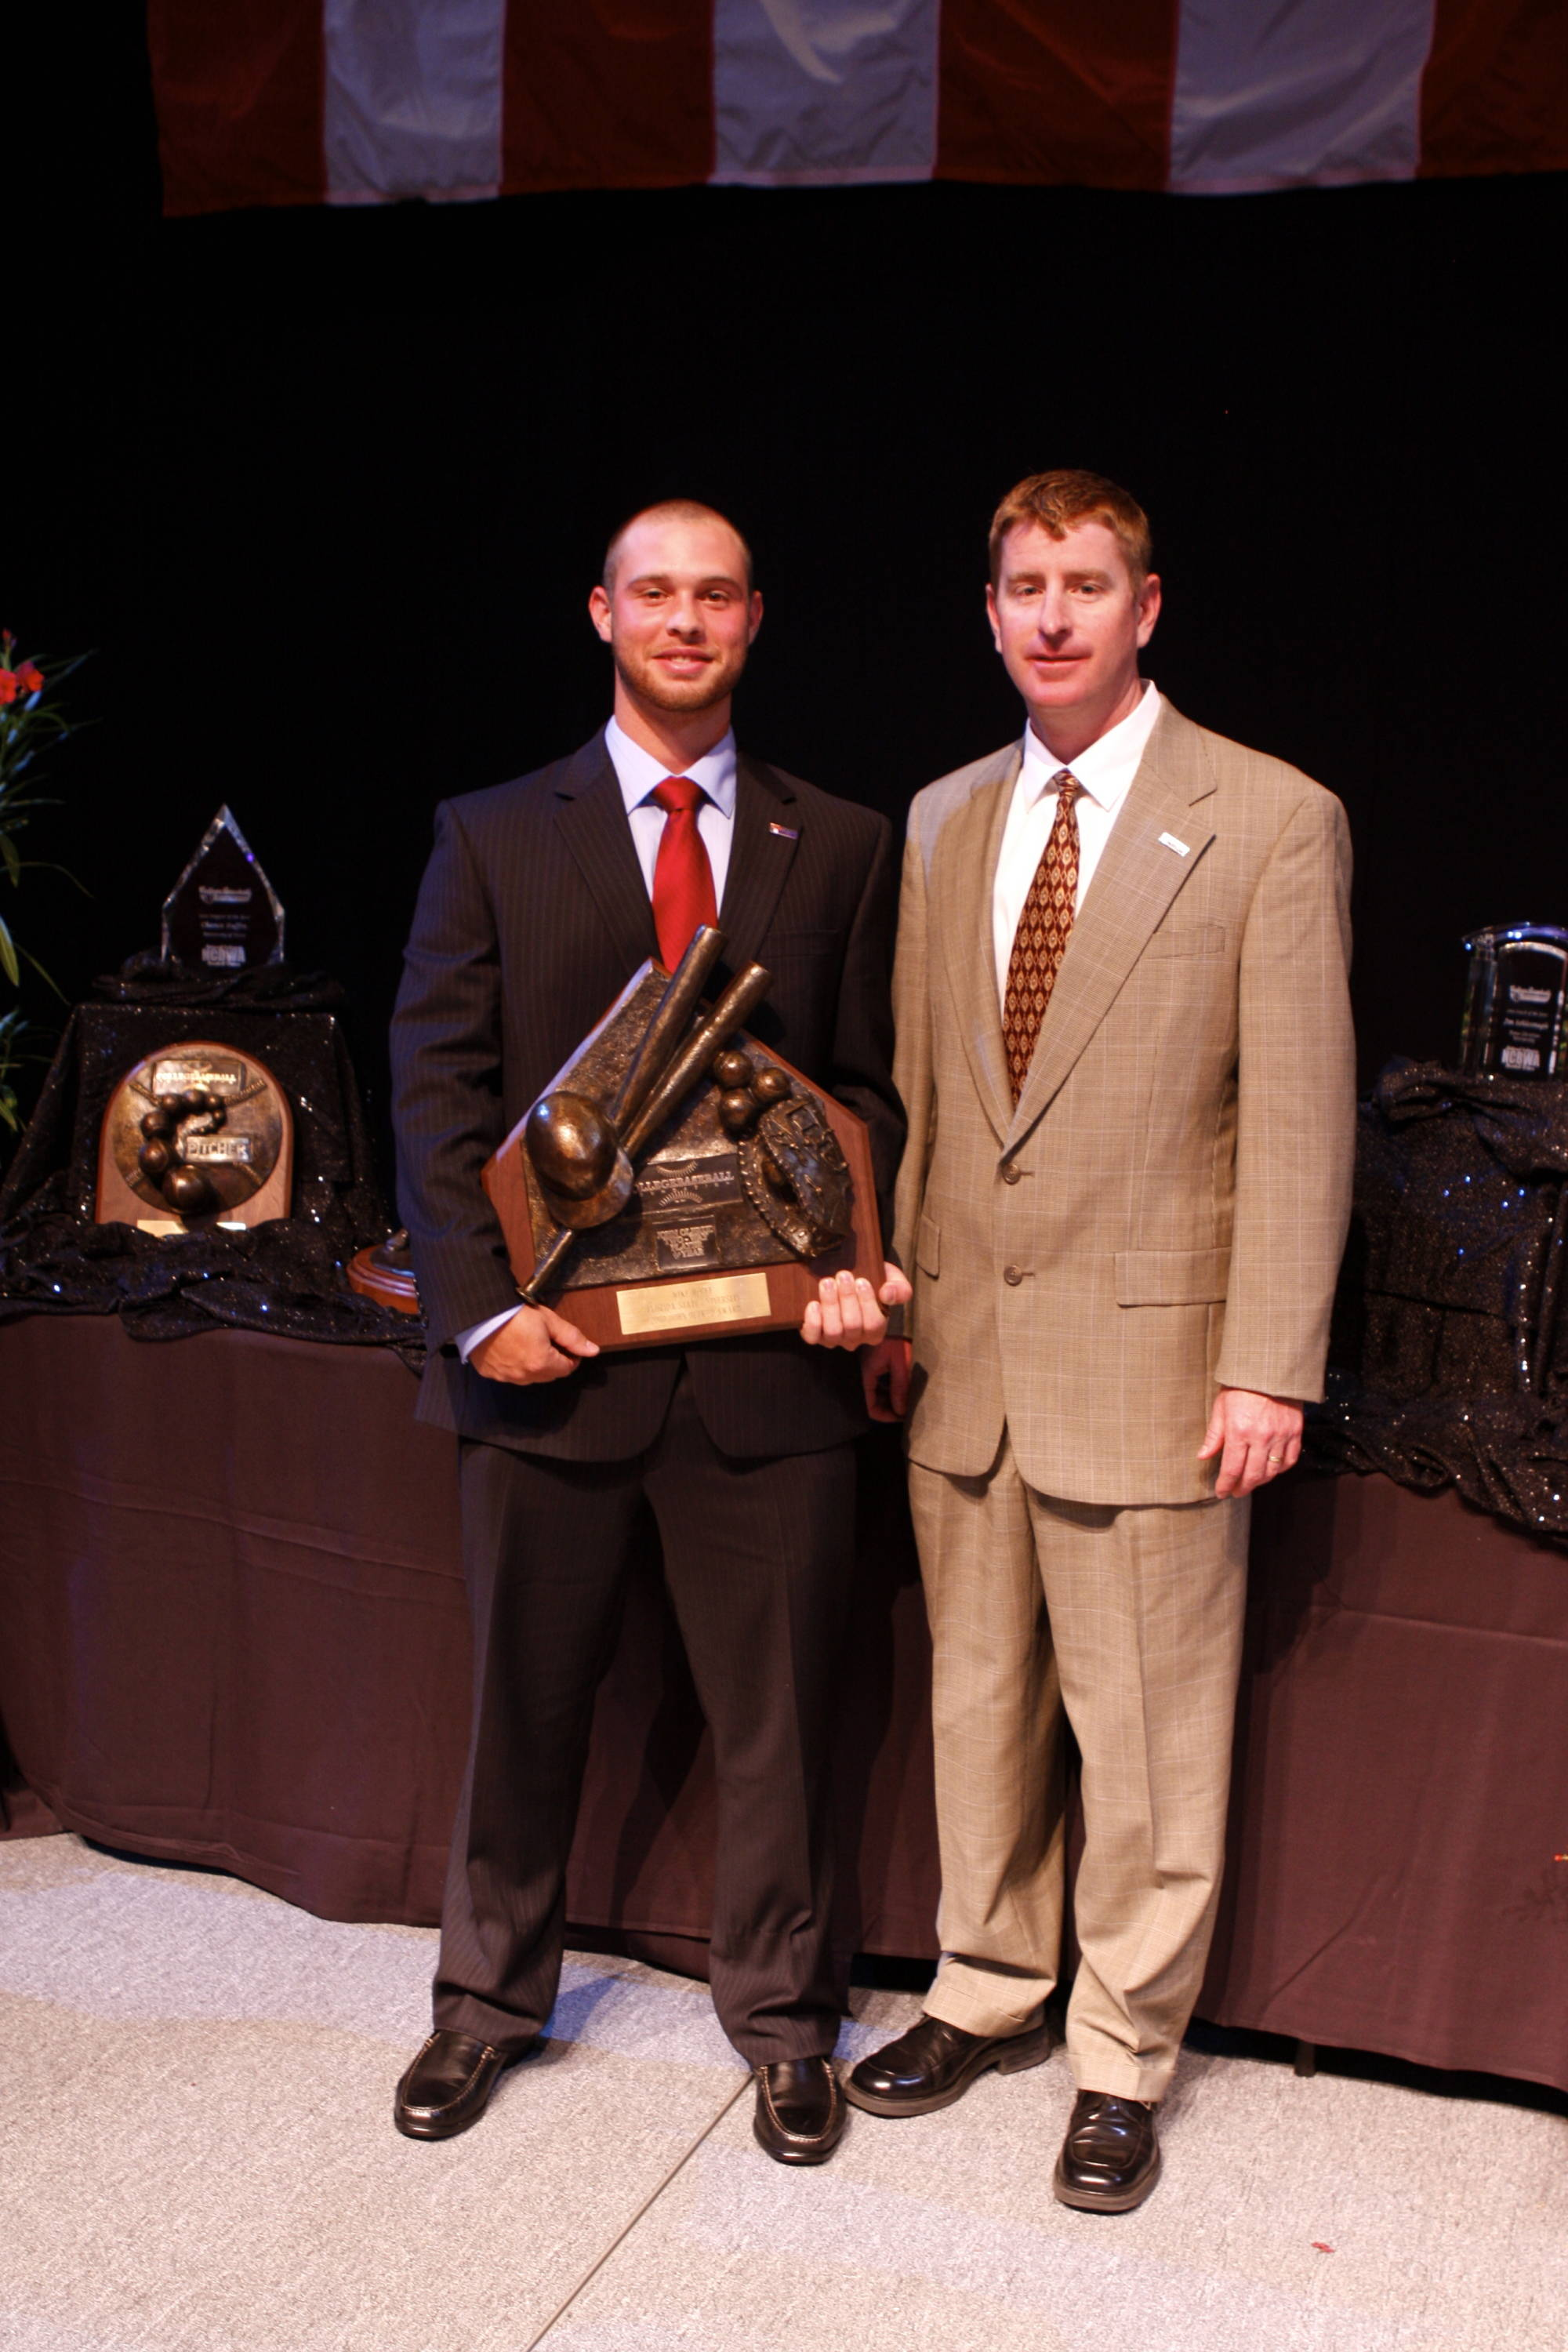 Mike McGee and Mike Martin, Jr.